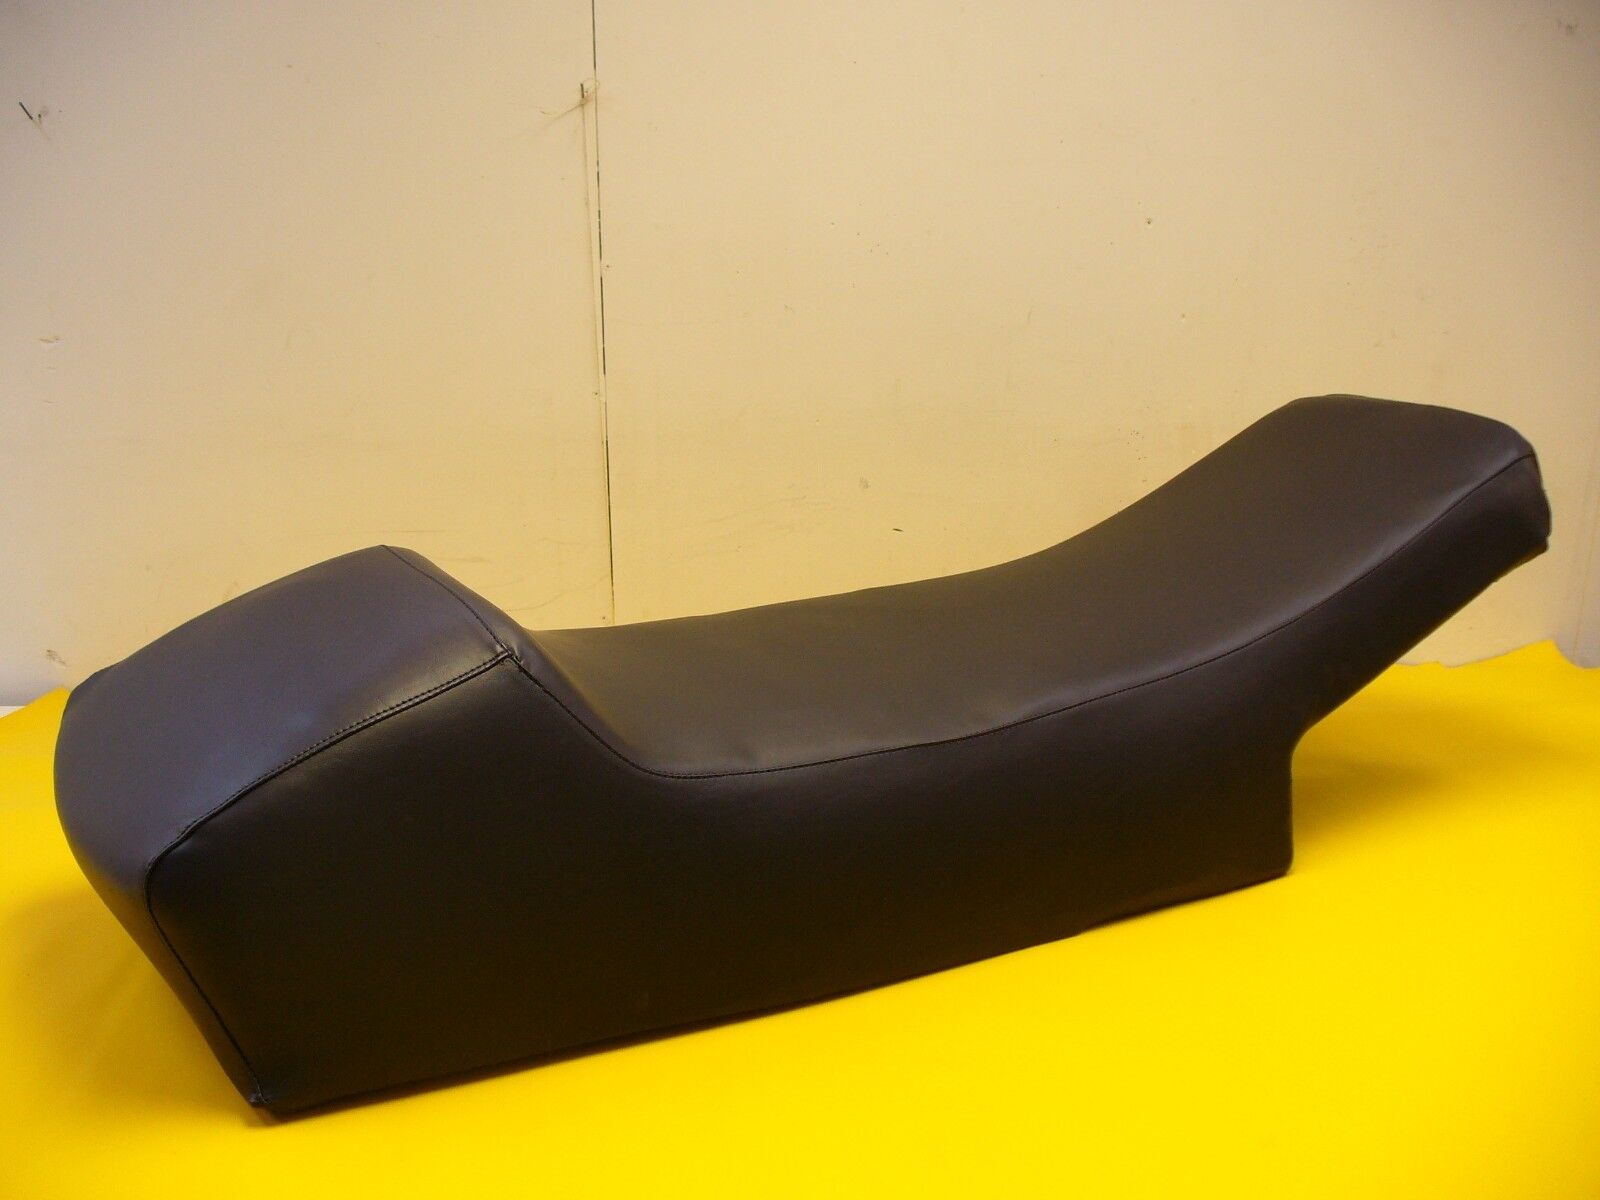 79-81 VINTAGE   SKI-DOO BLIZZARD SNOWMOBILE  SEAT COVER  NEW   the best selection of